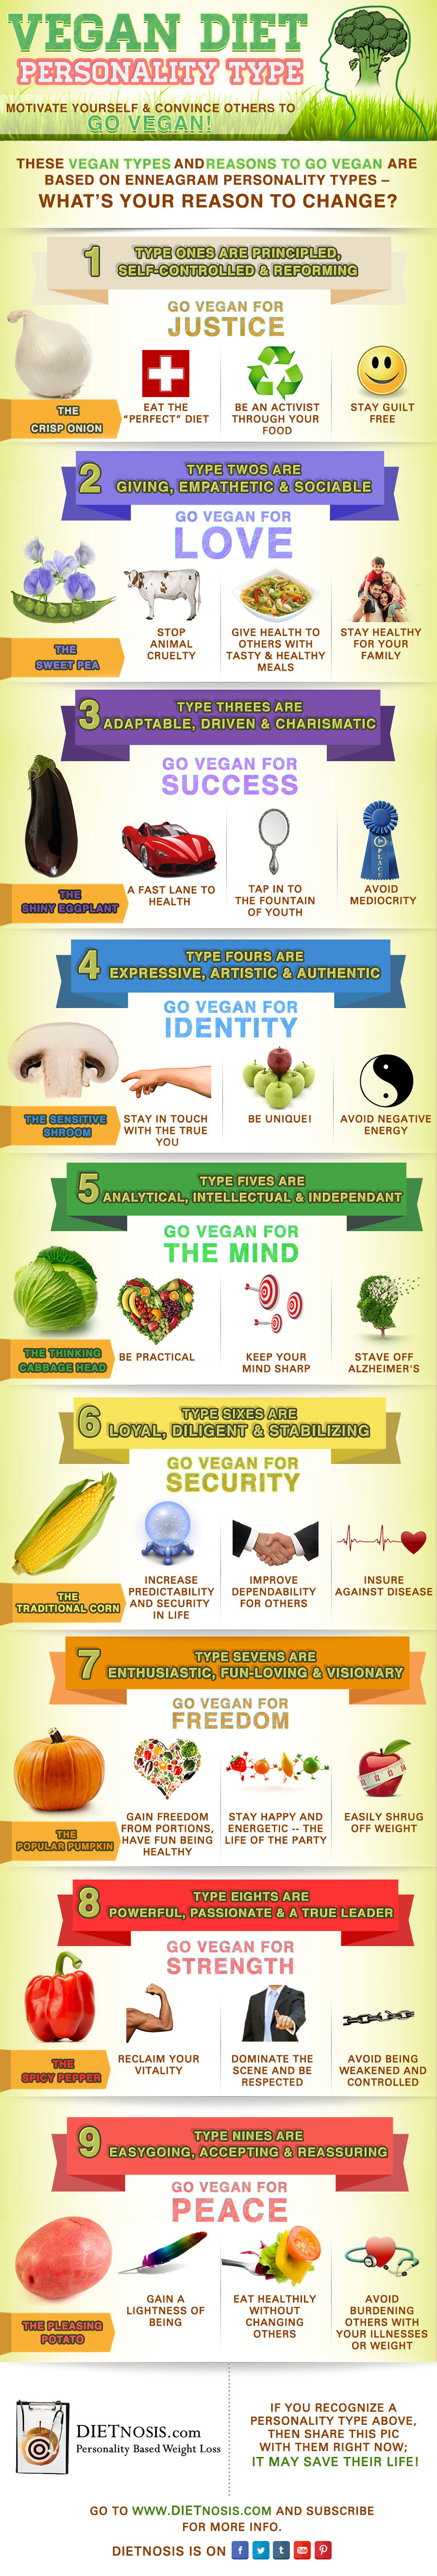 Vegan diet Personality Types